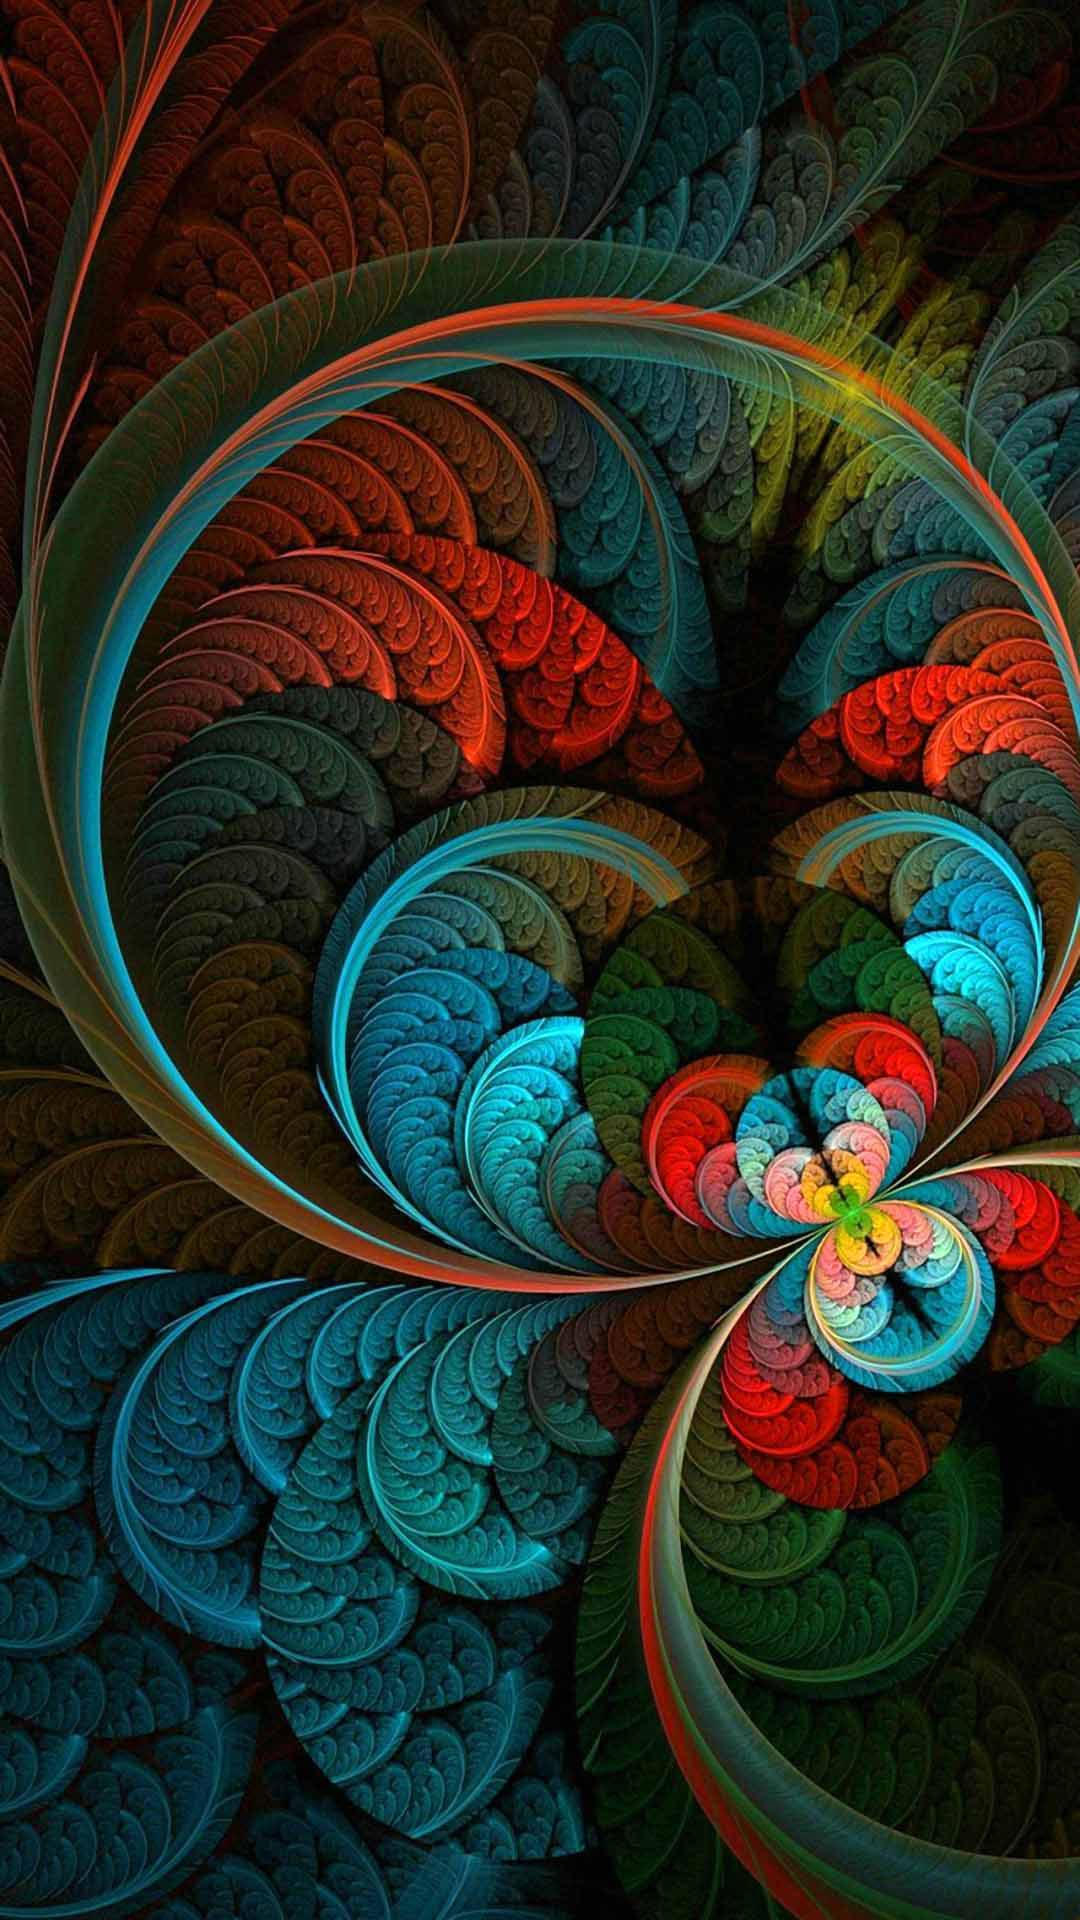 Fractal Wallpaper 4K Ultra HD for Android   APK Download 1080x1920